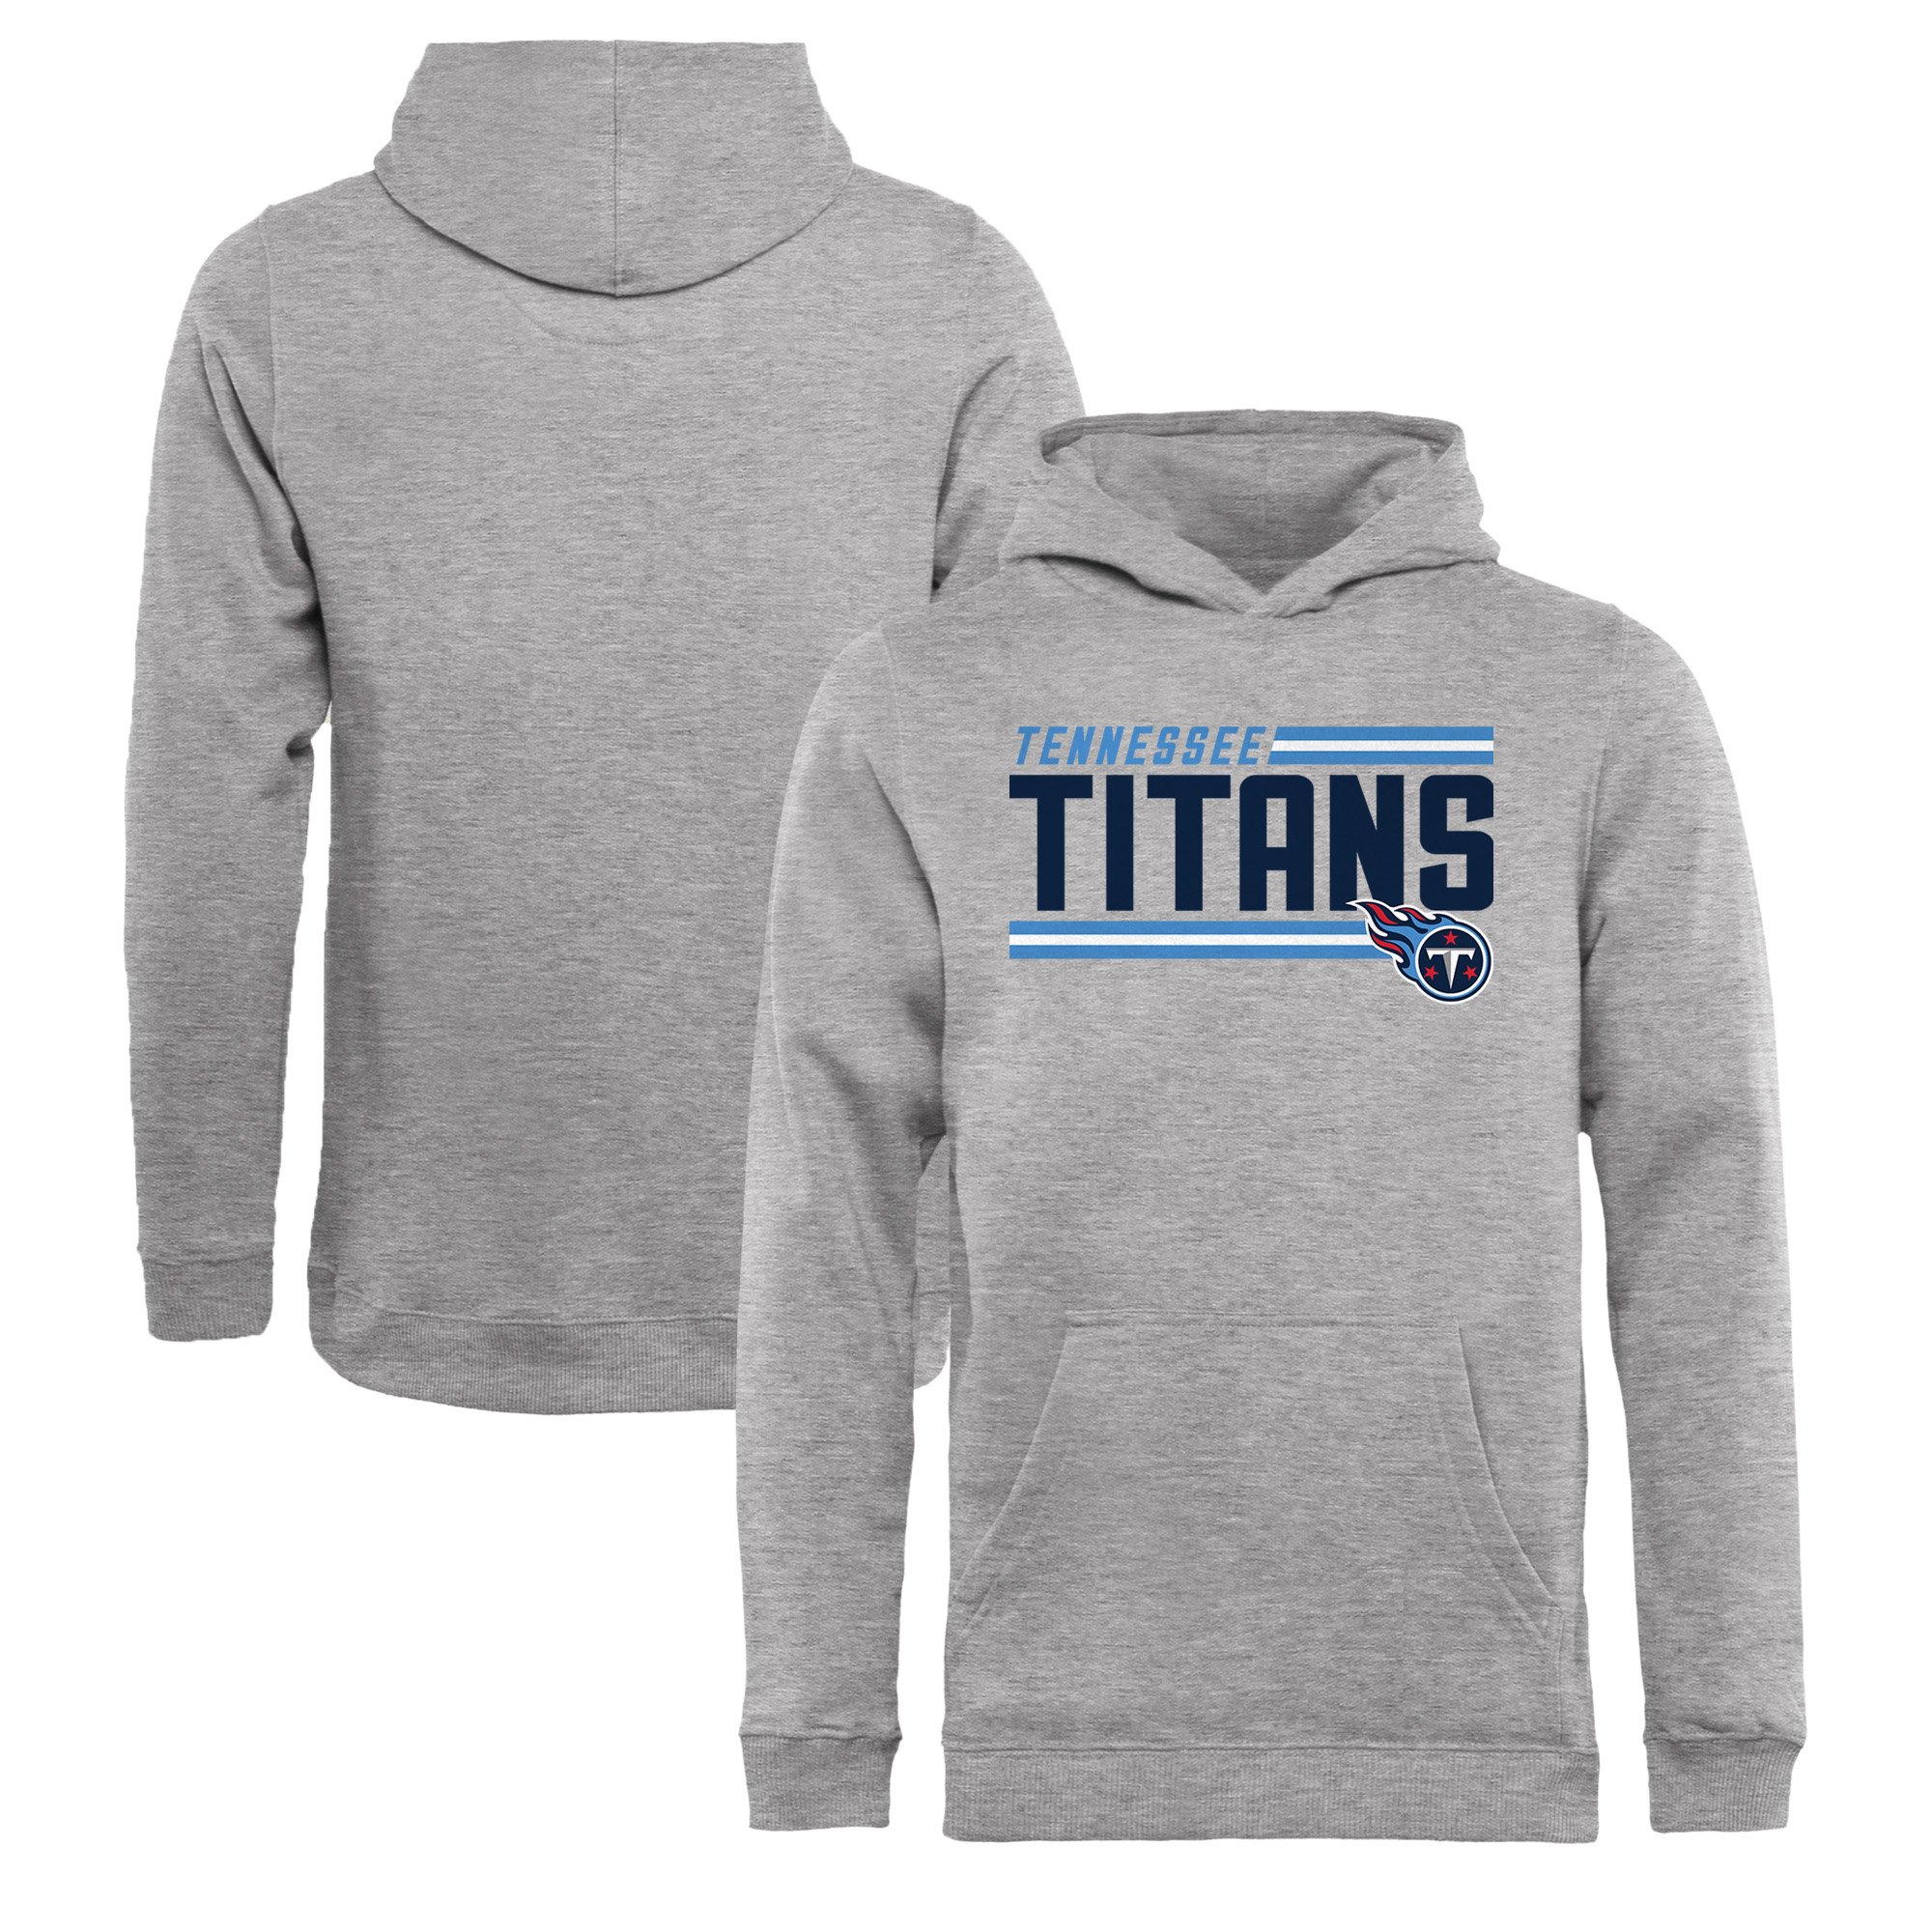 Tennessee Titans NFL Pro Line by Fanatics Branded Youth Iconic Collection On Side Stripe Pullover Hoodie - Ash